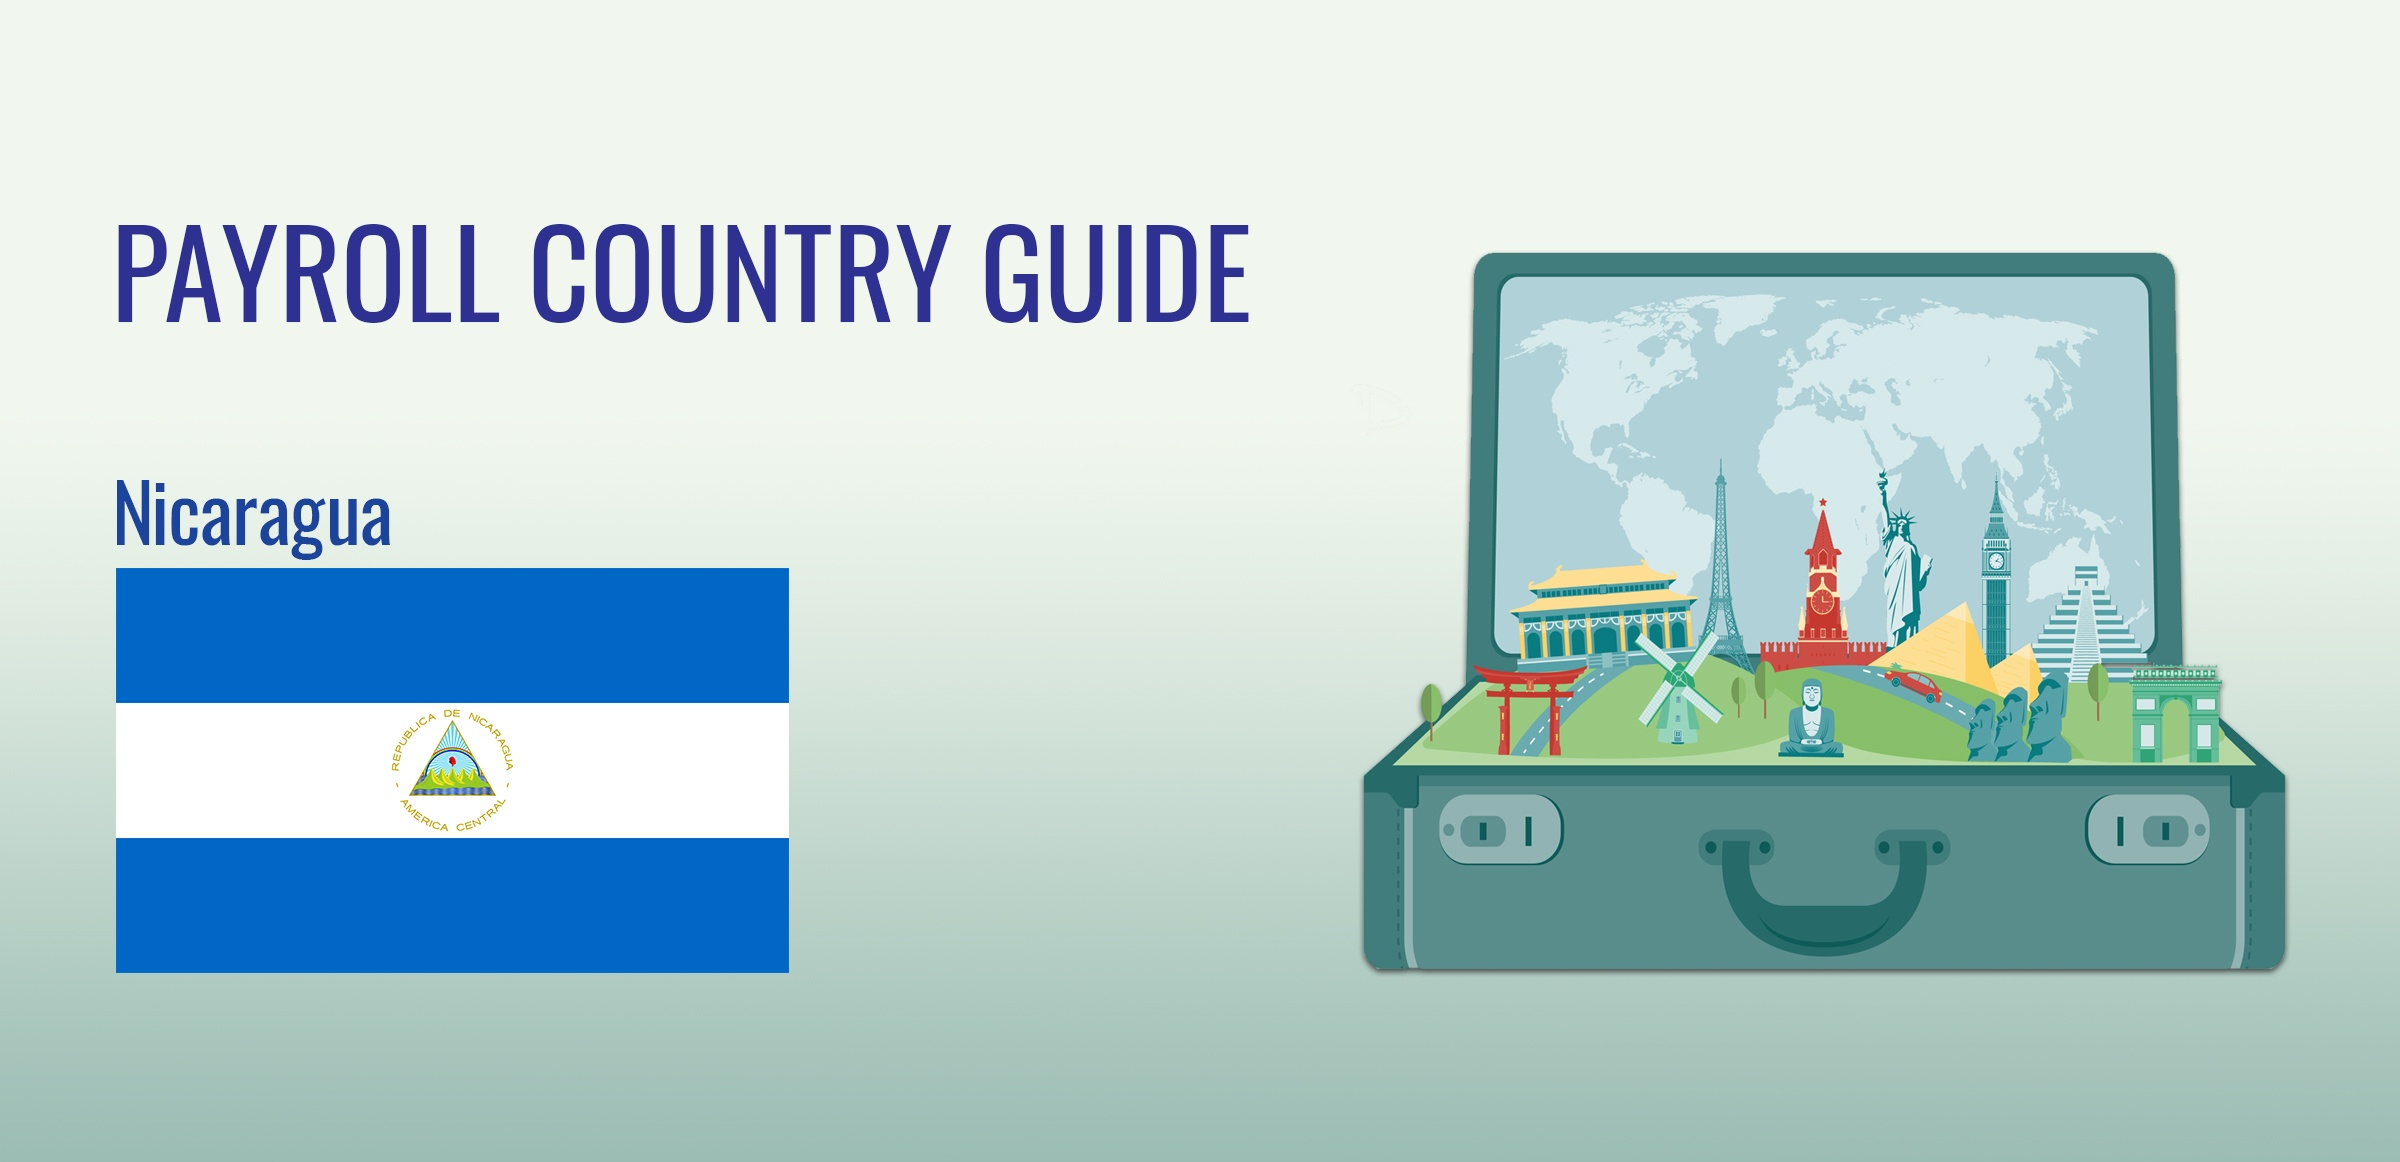 Understanding Payroll in Nicaragua: What Global Companies Need to Know About Nicaragua's Payroll